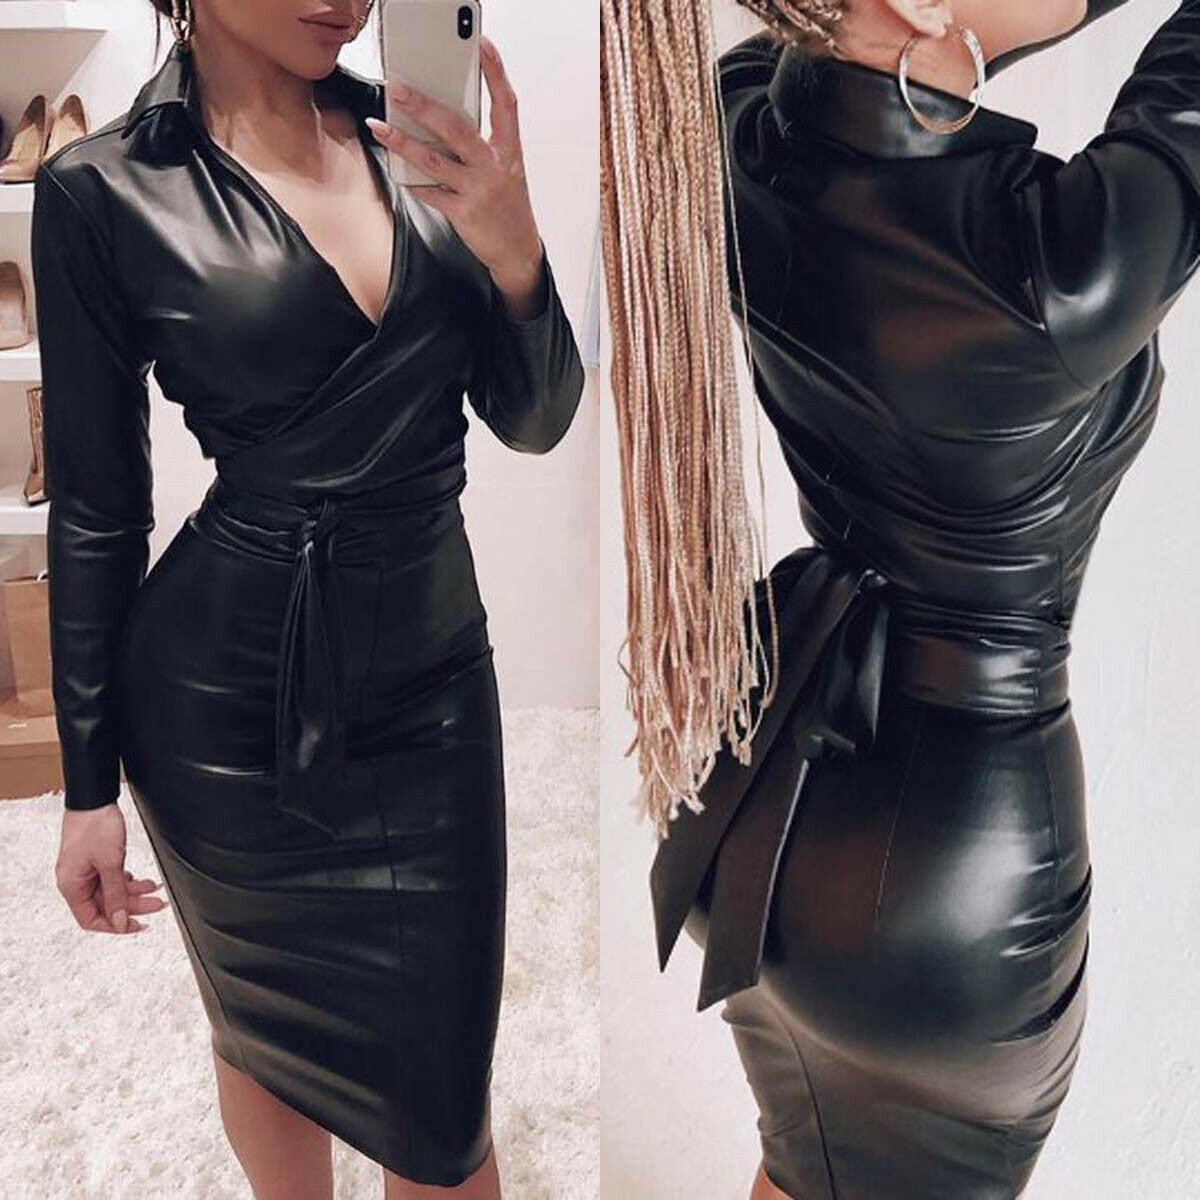 Women <font><b>Sexy</b></font> PU Leather Bodycon <font><b>V</b></font>-Neck <font><b>Dress</b></font> <font><b>Deep</b></font> Long Sleeve Empire Black Skinny Bodycon Midi <font><b>Dress</b></font> Night Club Sex Wear image